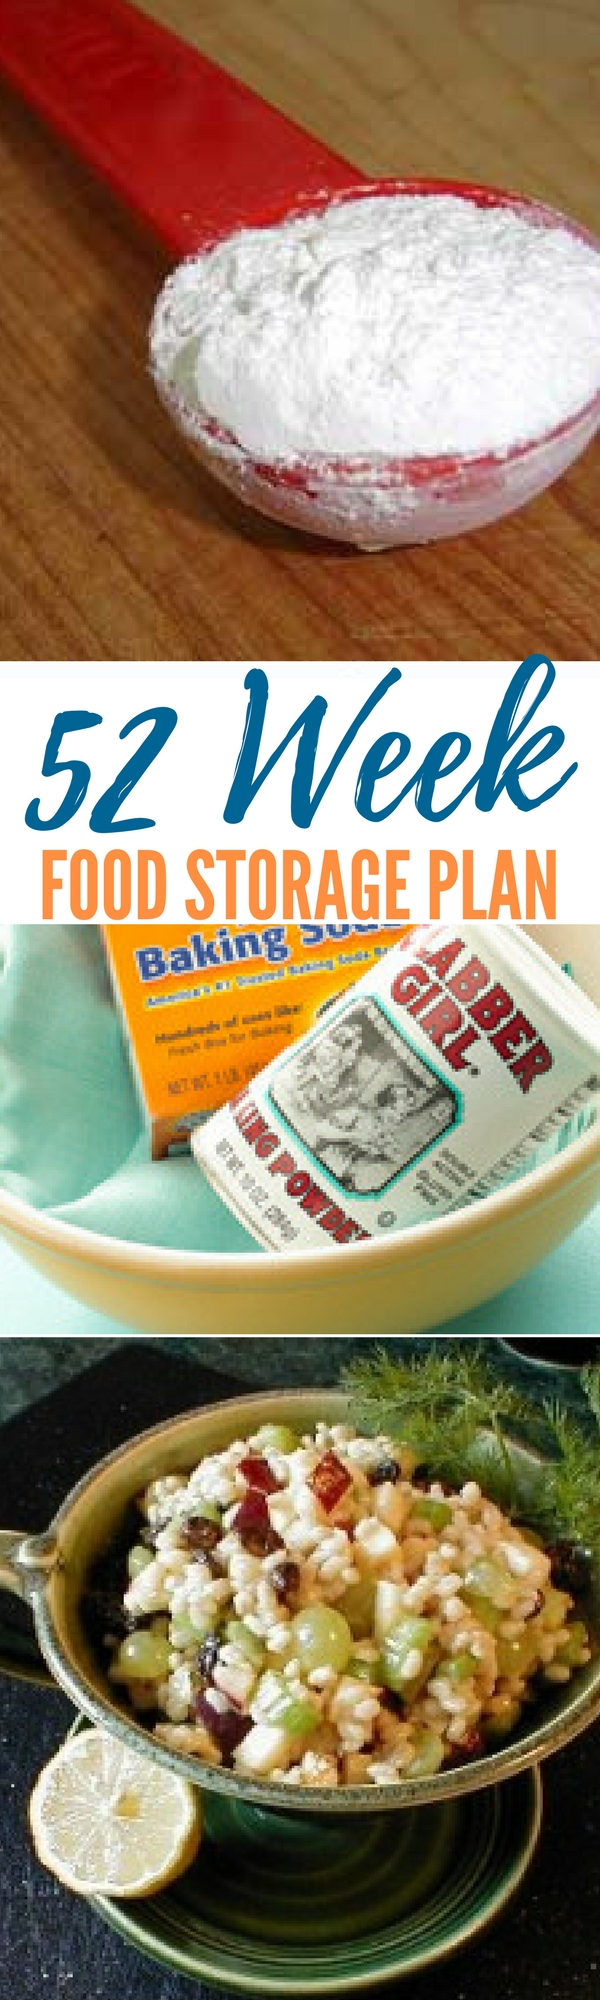 52 week food storage plan shtf prepping homesteading central 52 week food storage plan forumfinder Gallery